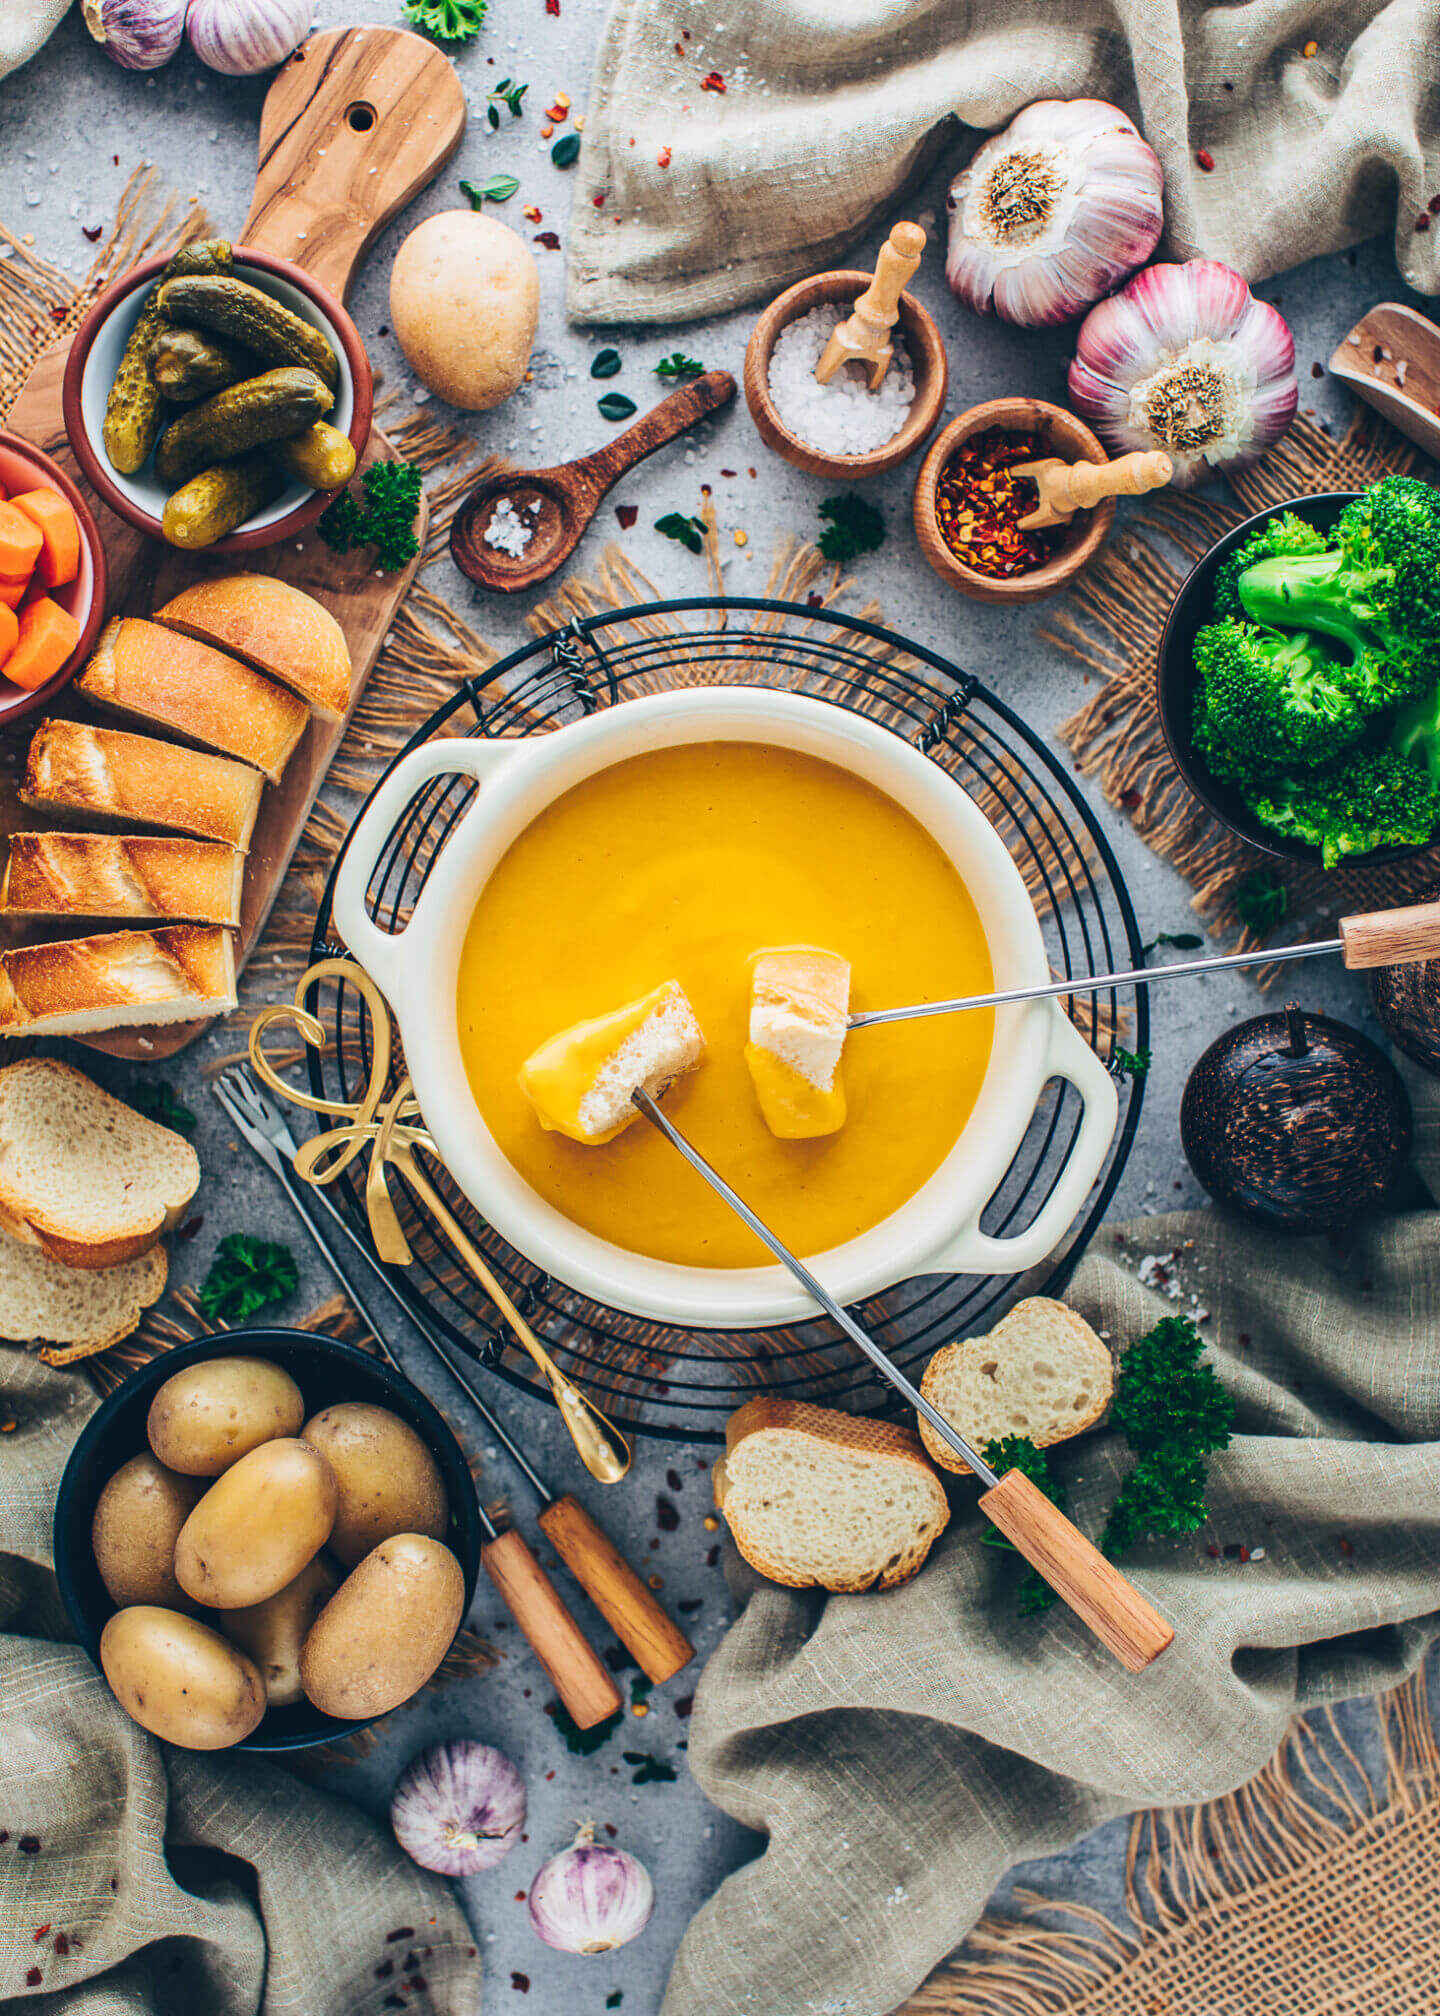 Vegan Cheese Fondue with bread, broccoli, carrots, potatoes, cucumbers, and garlic